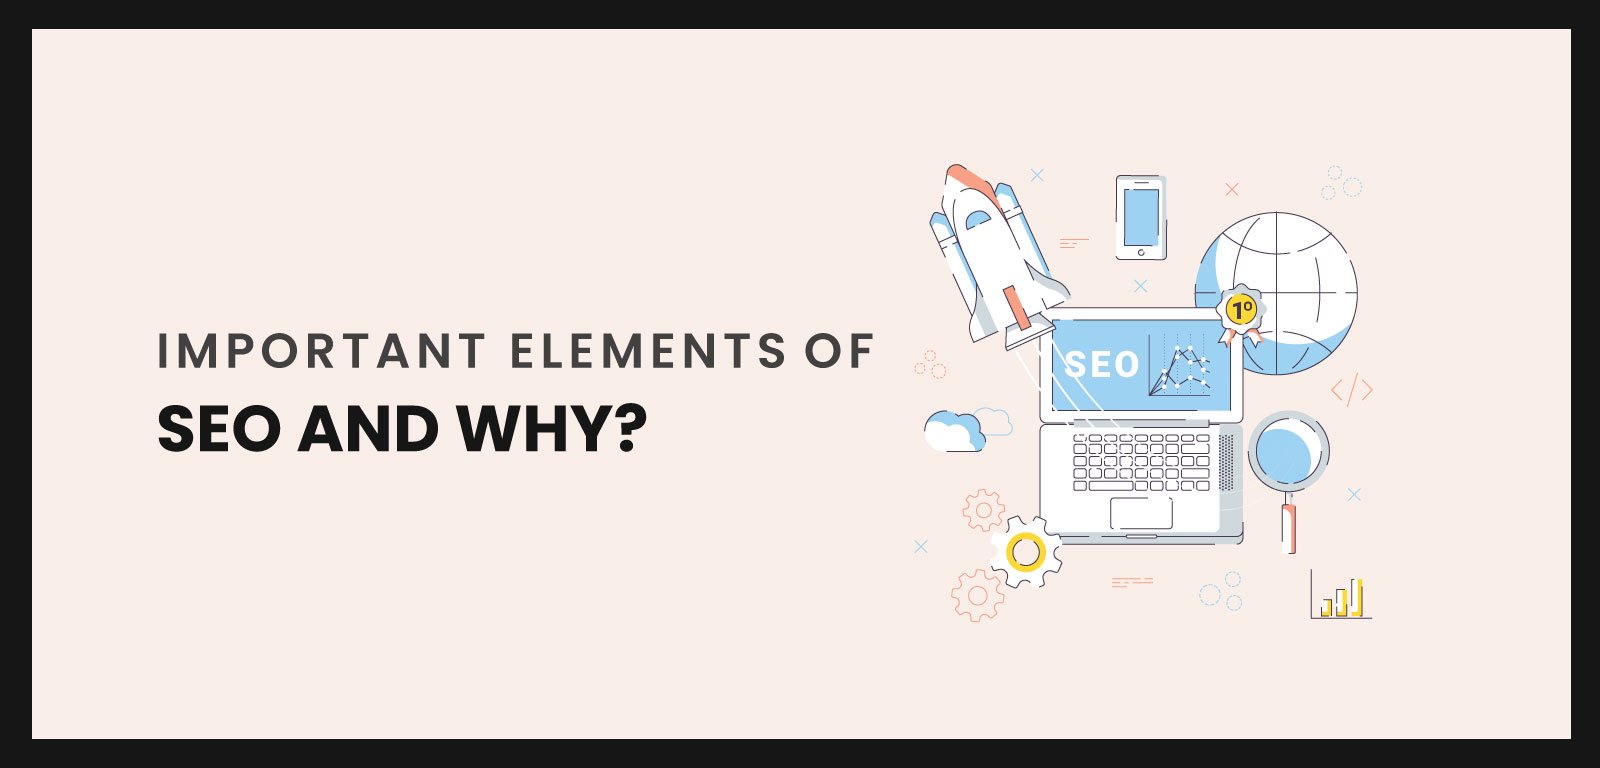 Important elements of SEO and why?